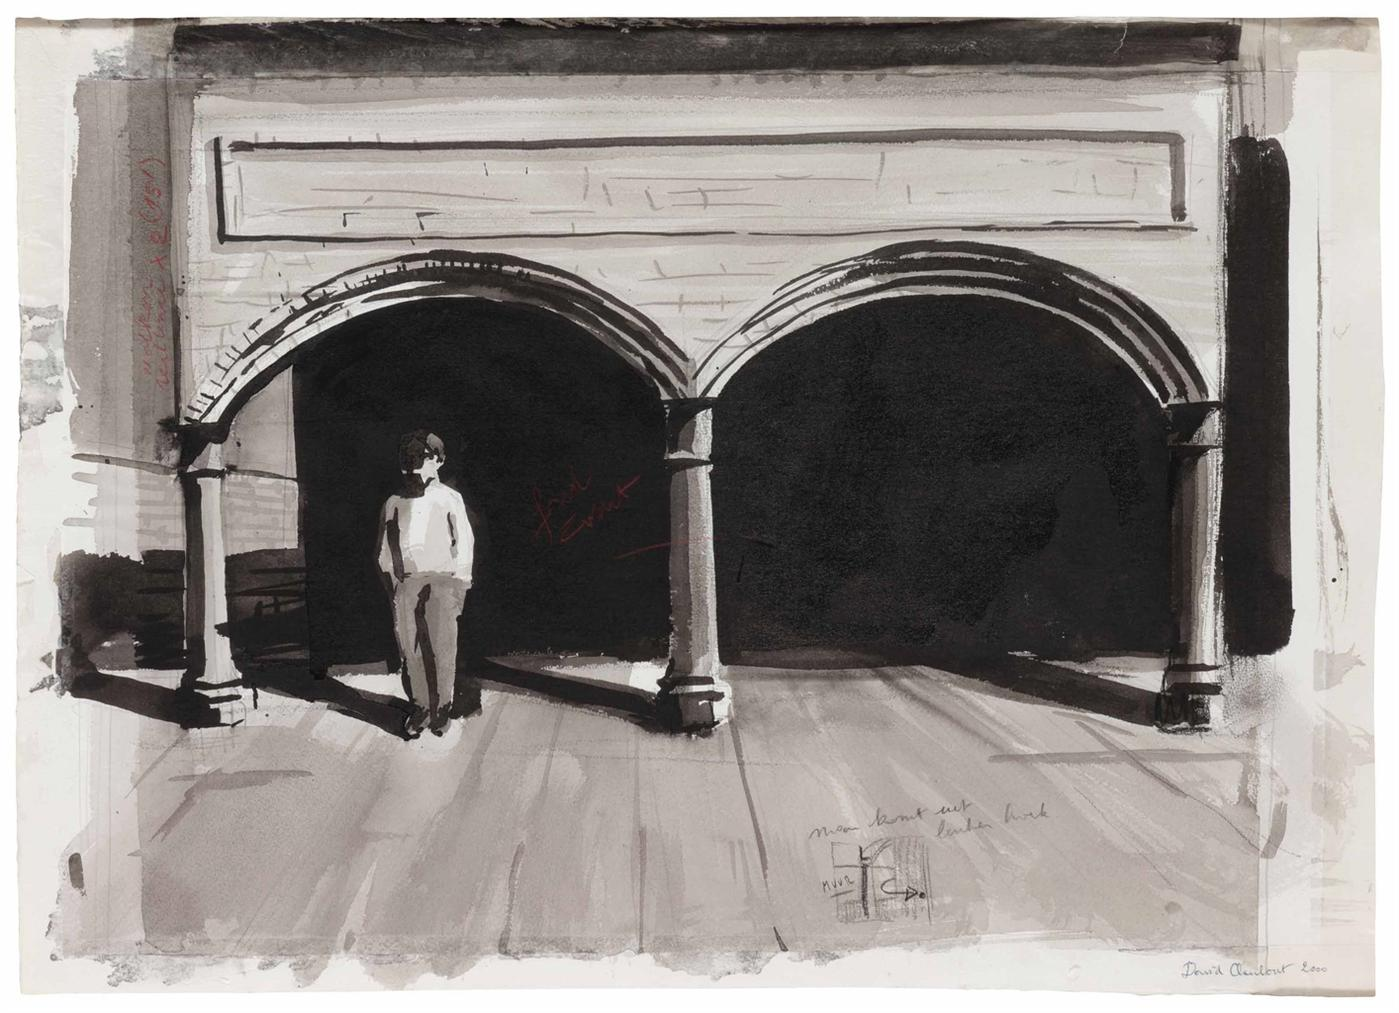 David Claerbout-Man Under Arches (Study)-2000